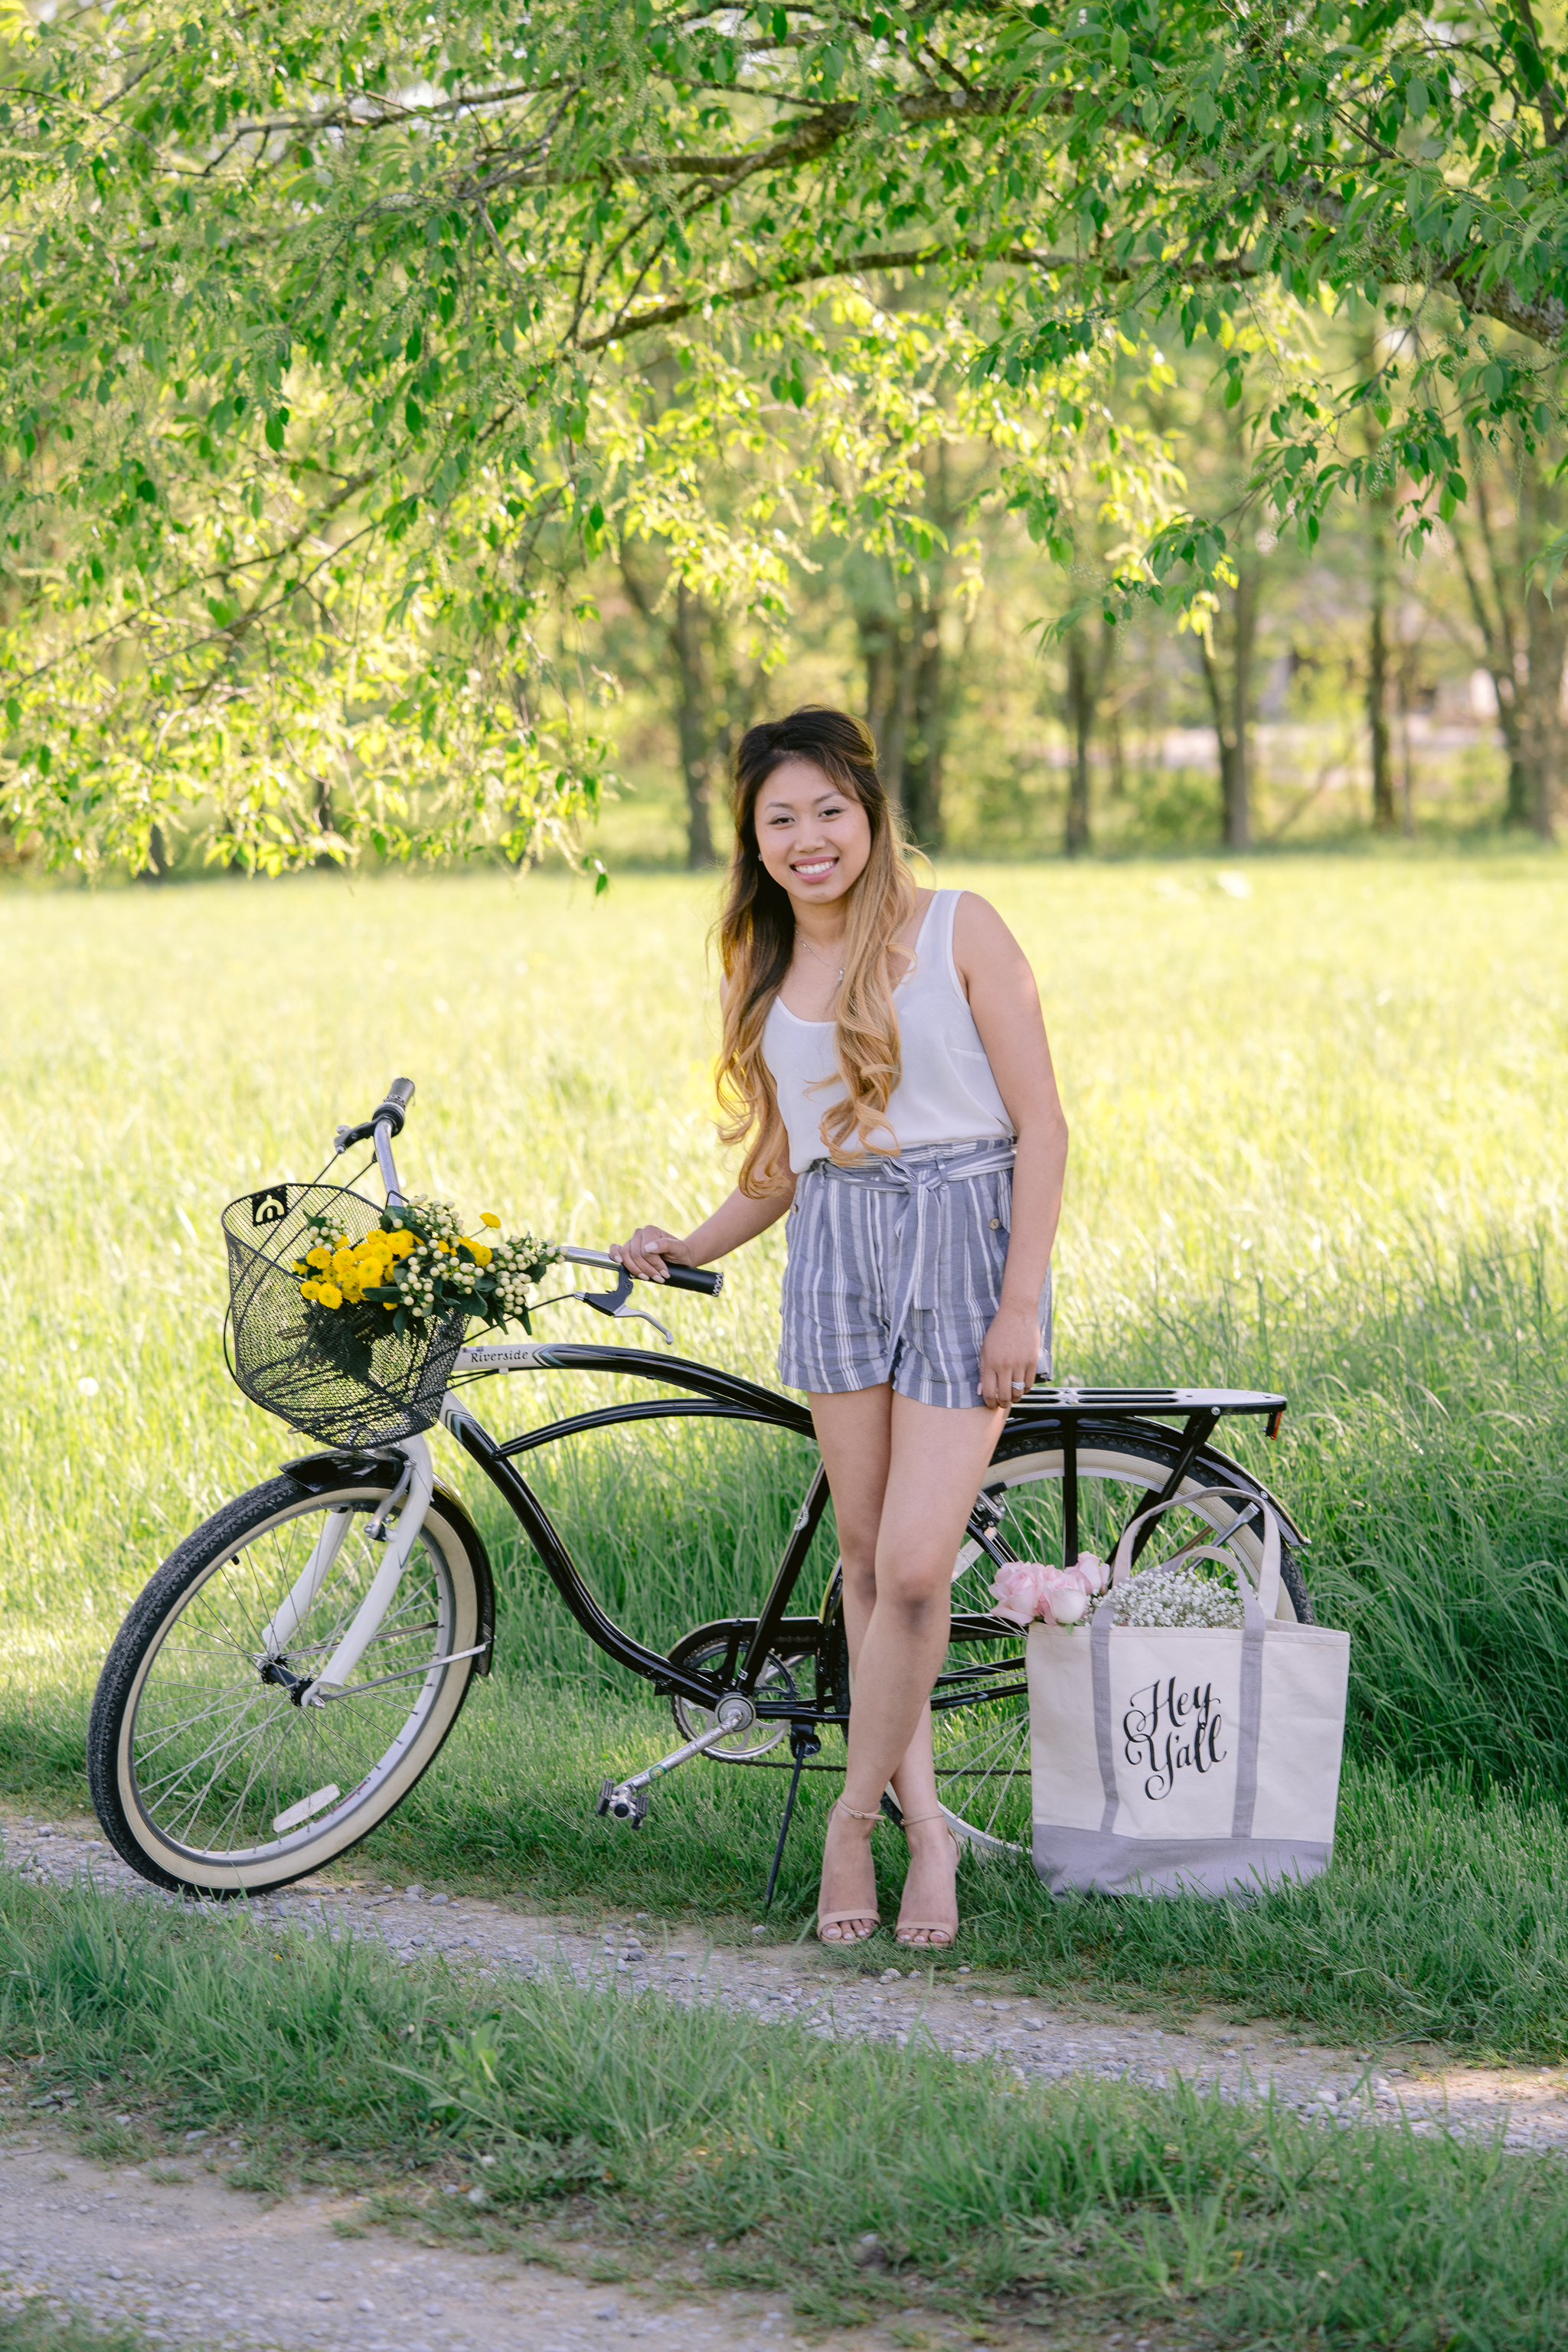 Countryside Floral Bicycle Headshots